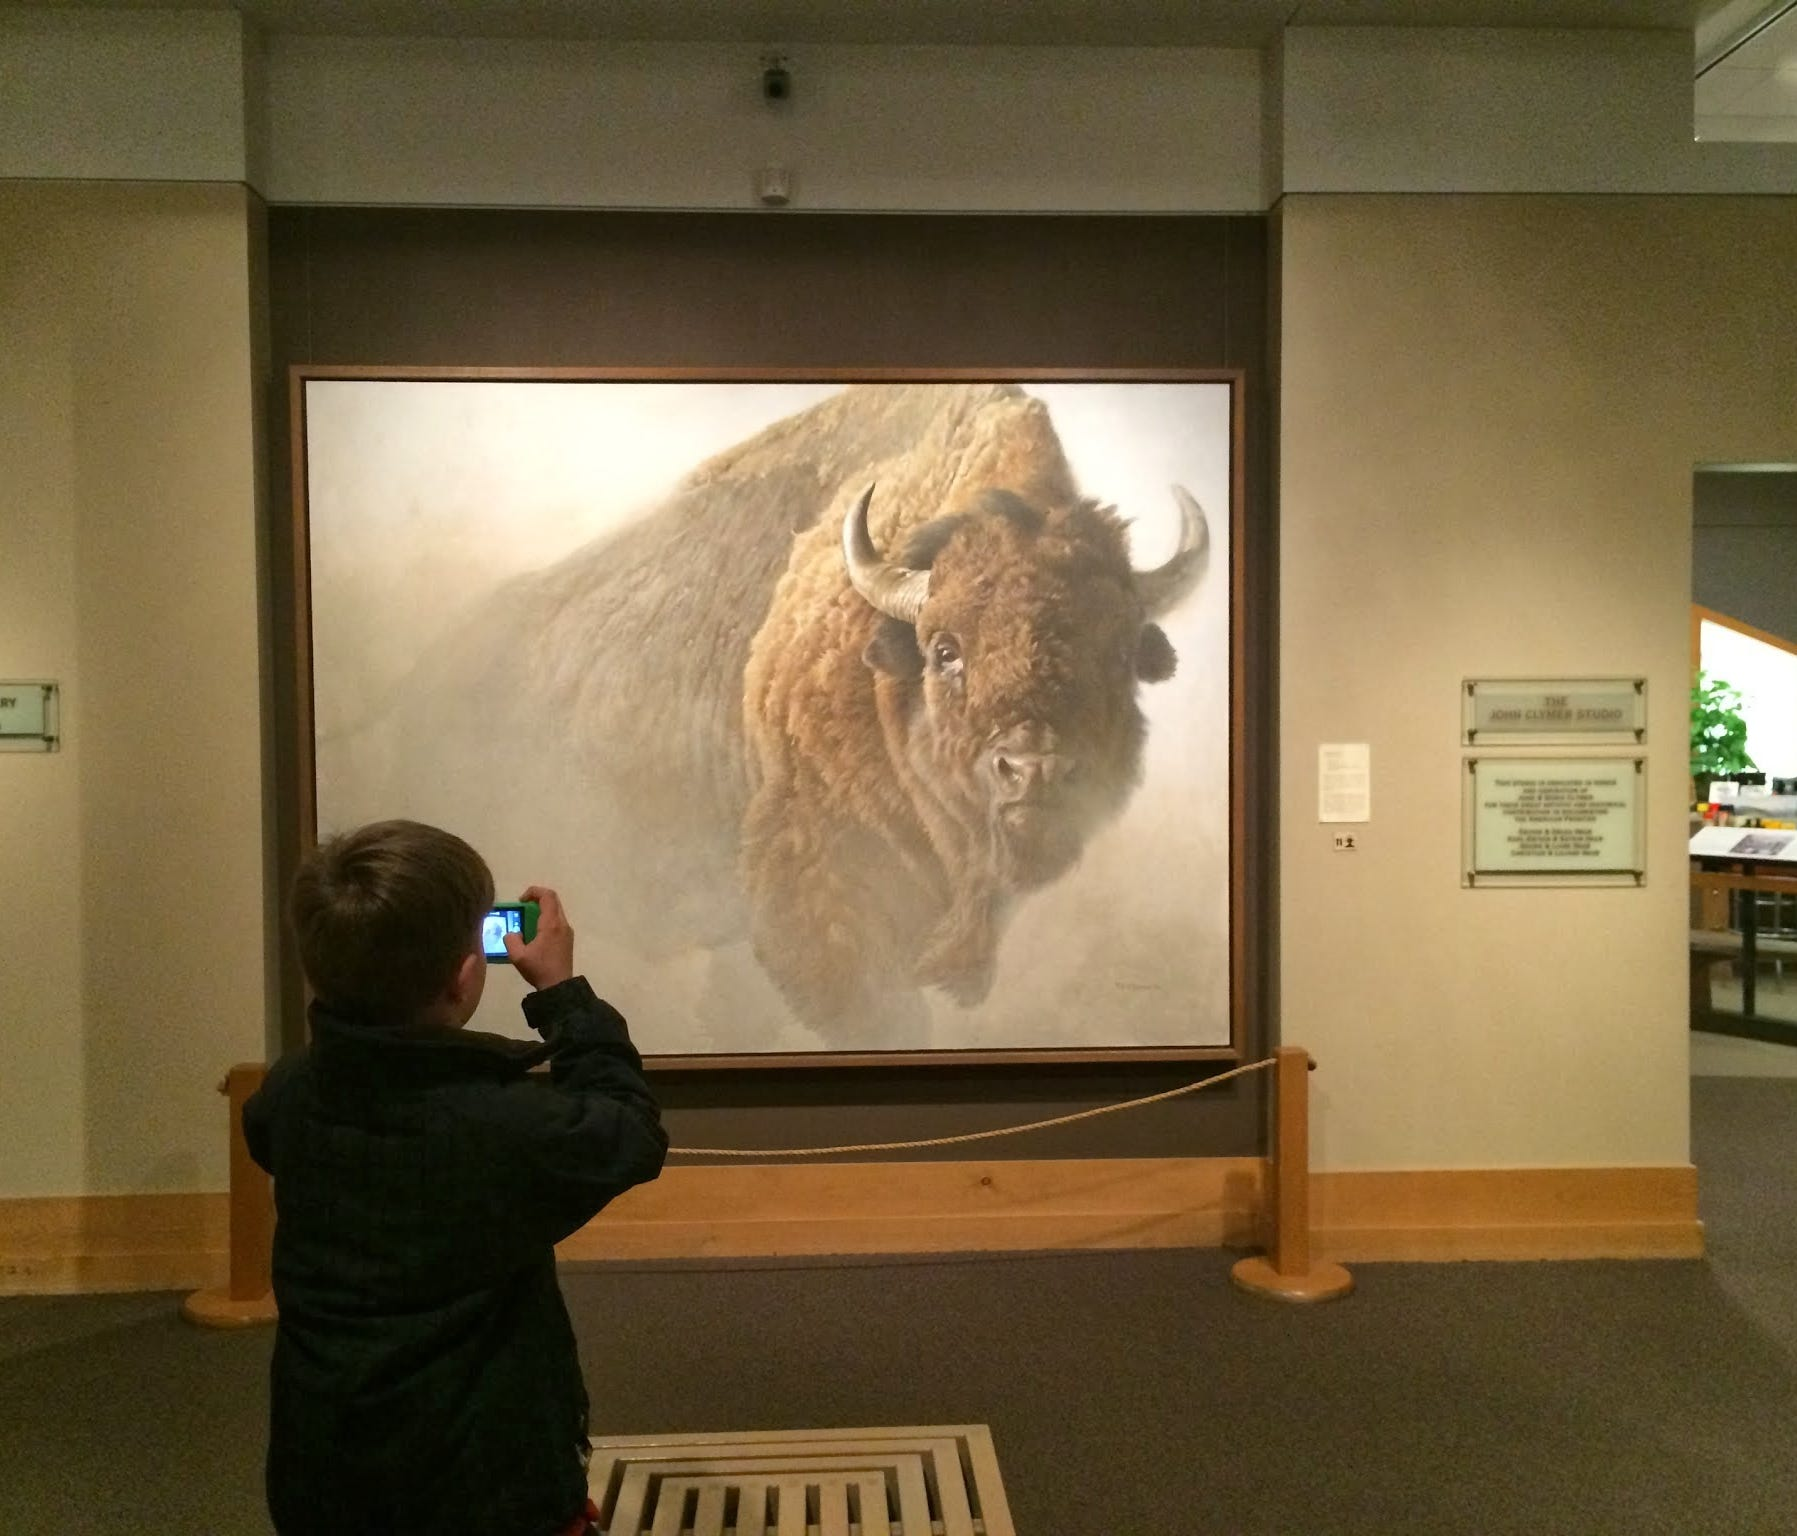 Iden Elliott photographs a painting at the National Museum of Wildlife Art in Jackson Hole, Wyo. A two-week trip to the American West helped us get acclimated to a life lived on the road.